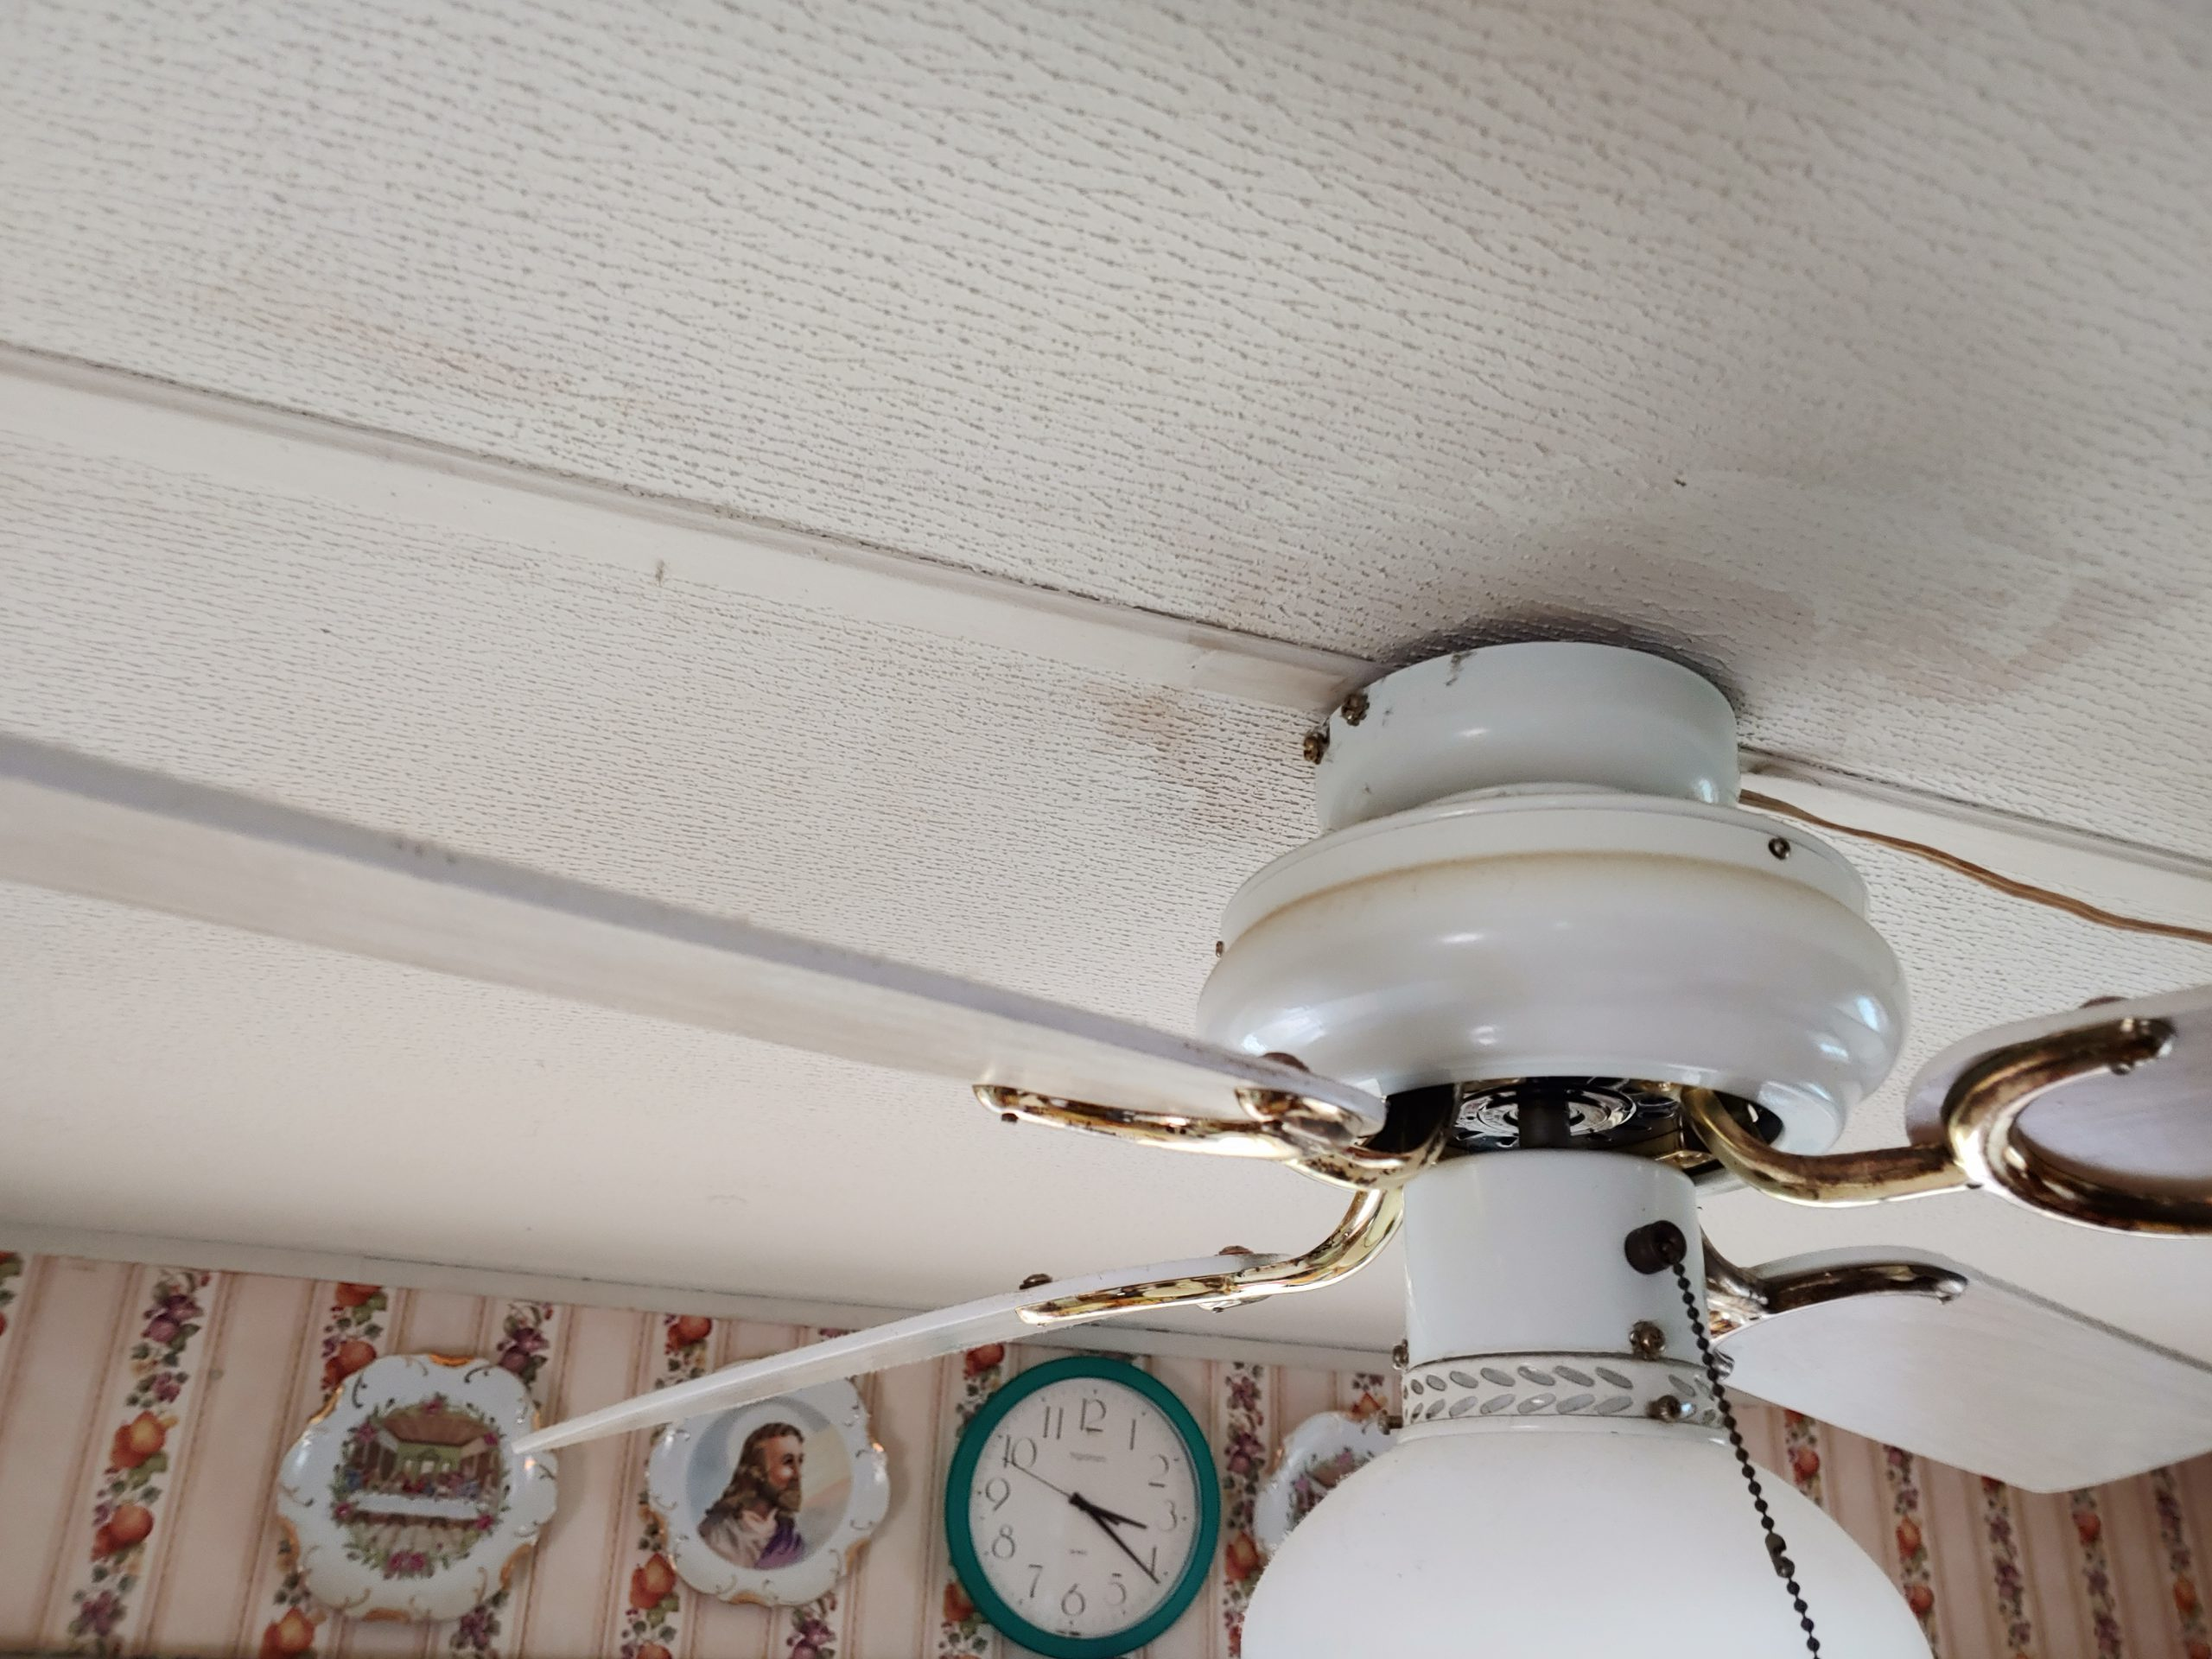 View of water damage on ceiling